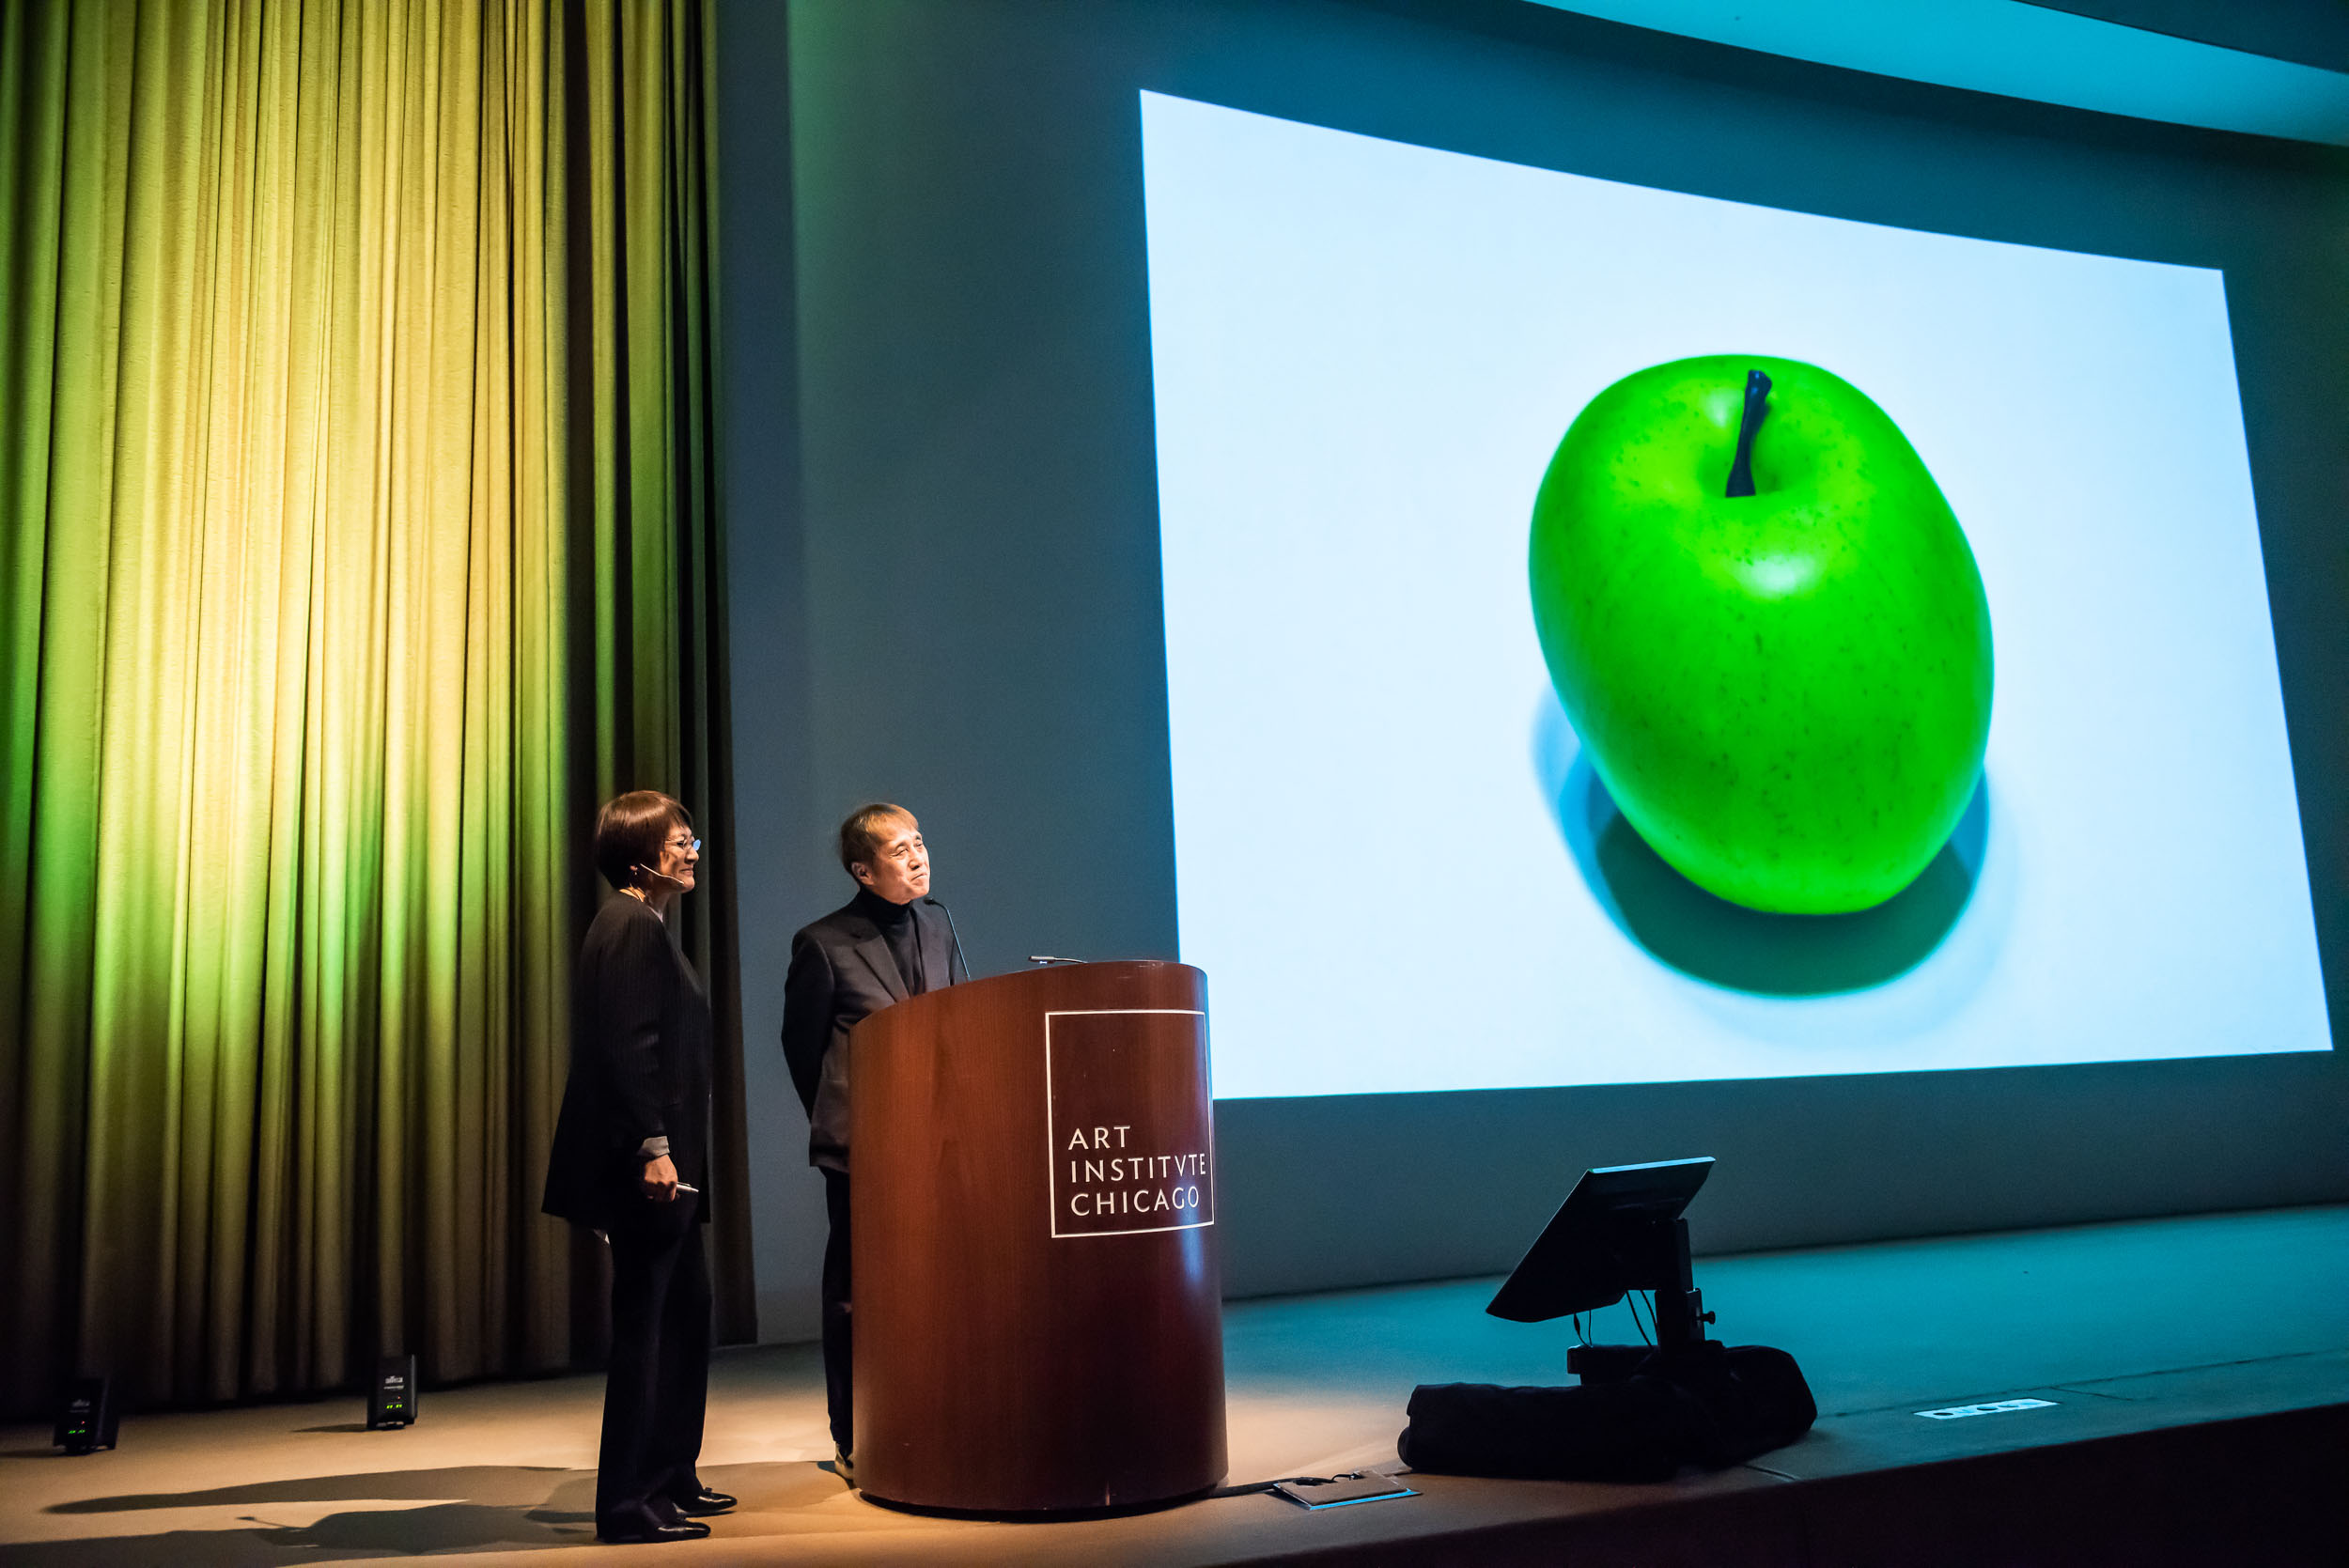 181011 - Tadao Ando Lecture - mark campbell photography-18_Resized.jpg